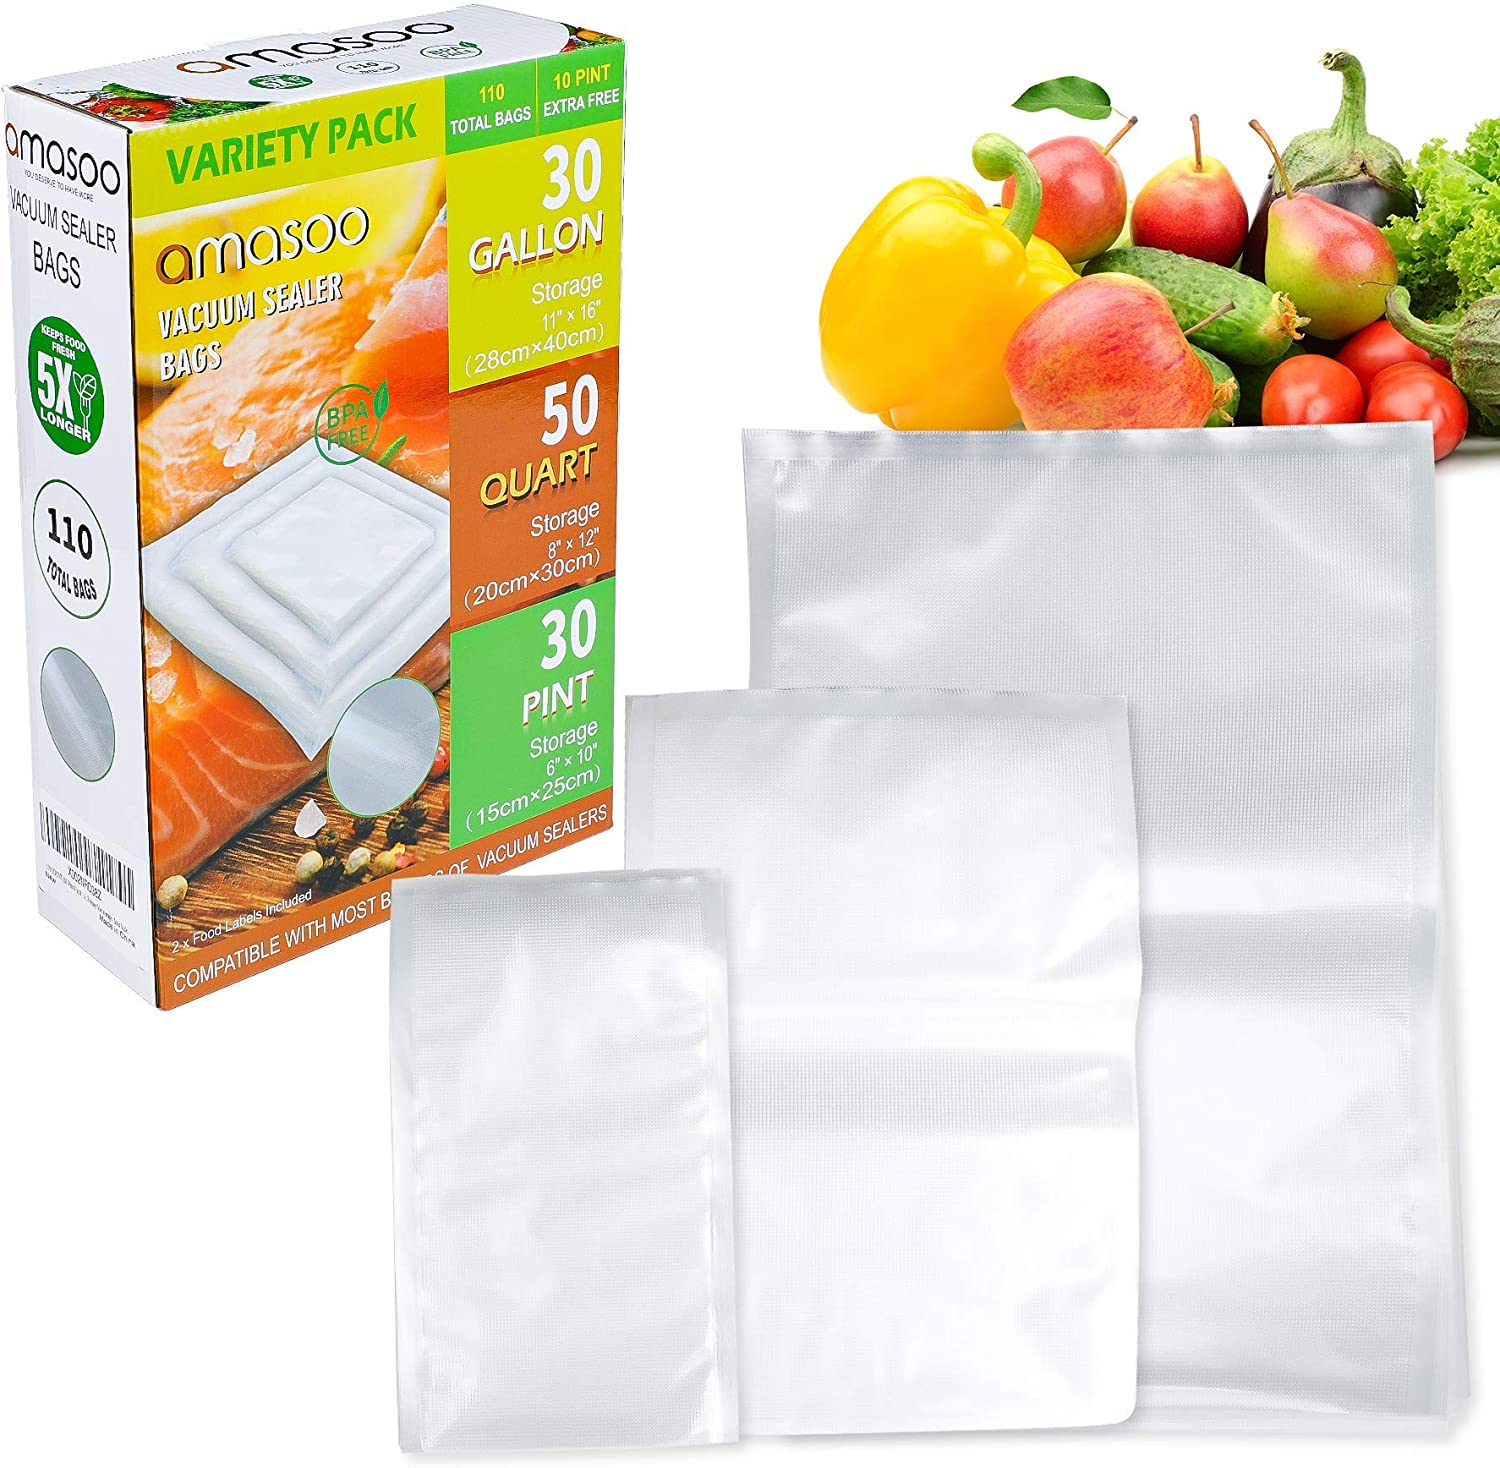 110 COUNT (30-Pint 6''x10'', 50-Quart 8''x12'', 30-Gallon 11''x16'') - AMASOO Vacuum Sealer Bags for Food, Precut Food Saver Bags with Food labels, BPA-Free, Heavy Duty, Compatible for Foodsaver, Seal a Meal, All Vacuum Sealer Machine, Freezer Vac storage / Sous Vide